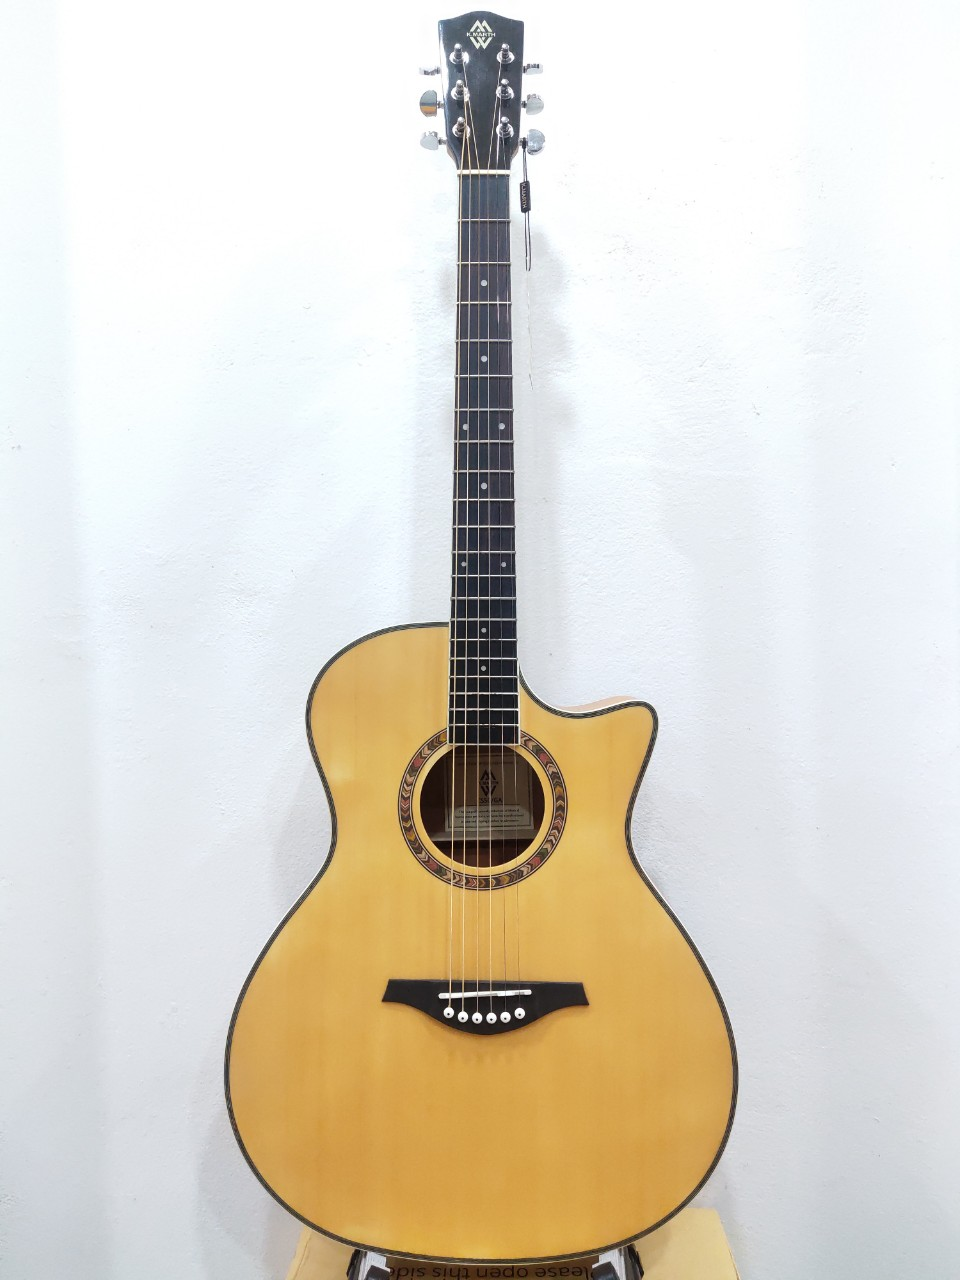 Đàn Guitar Acoustic Marth CS50